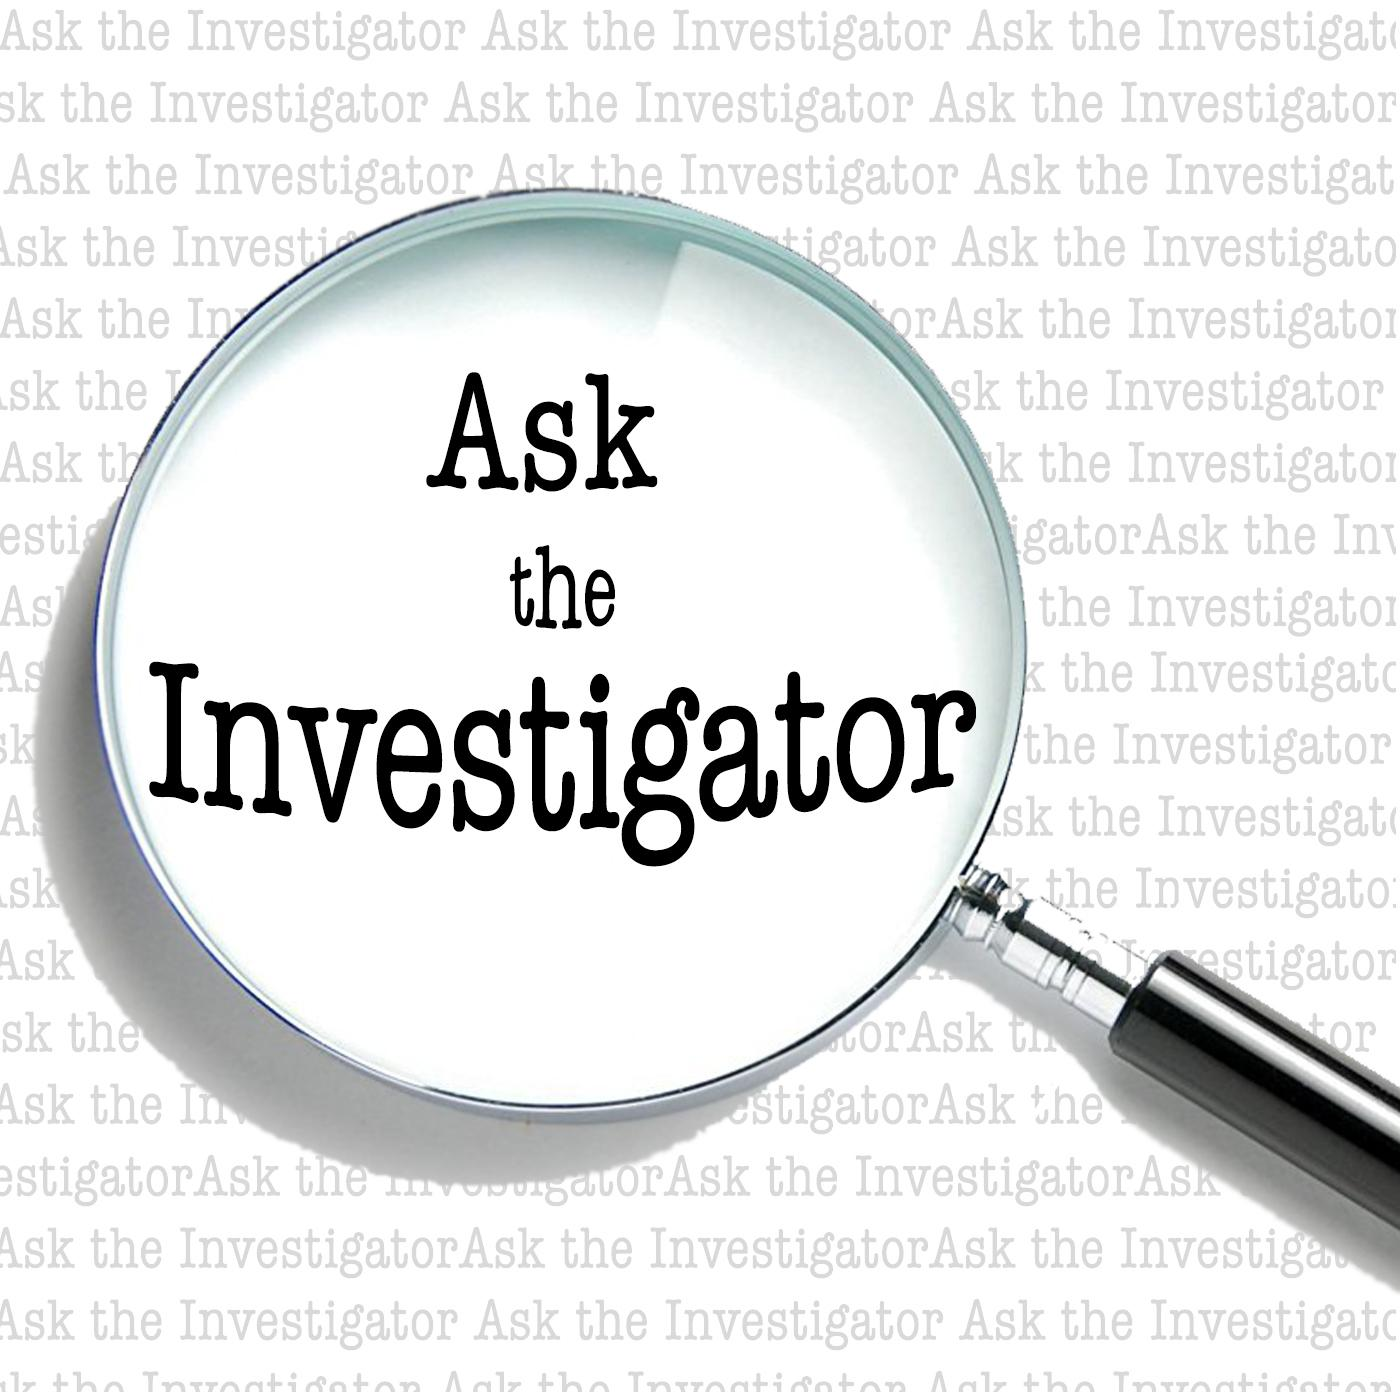 Ask the Investigator (podcast) - Ken Cummins | Listen Notes